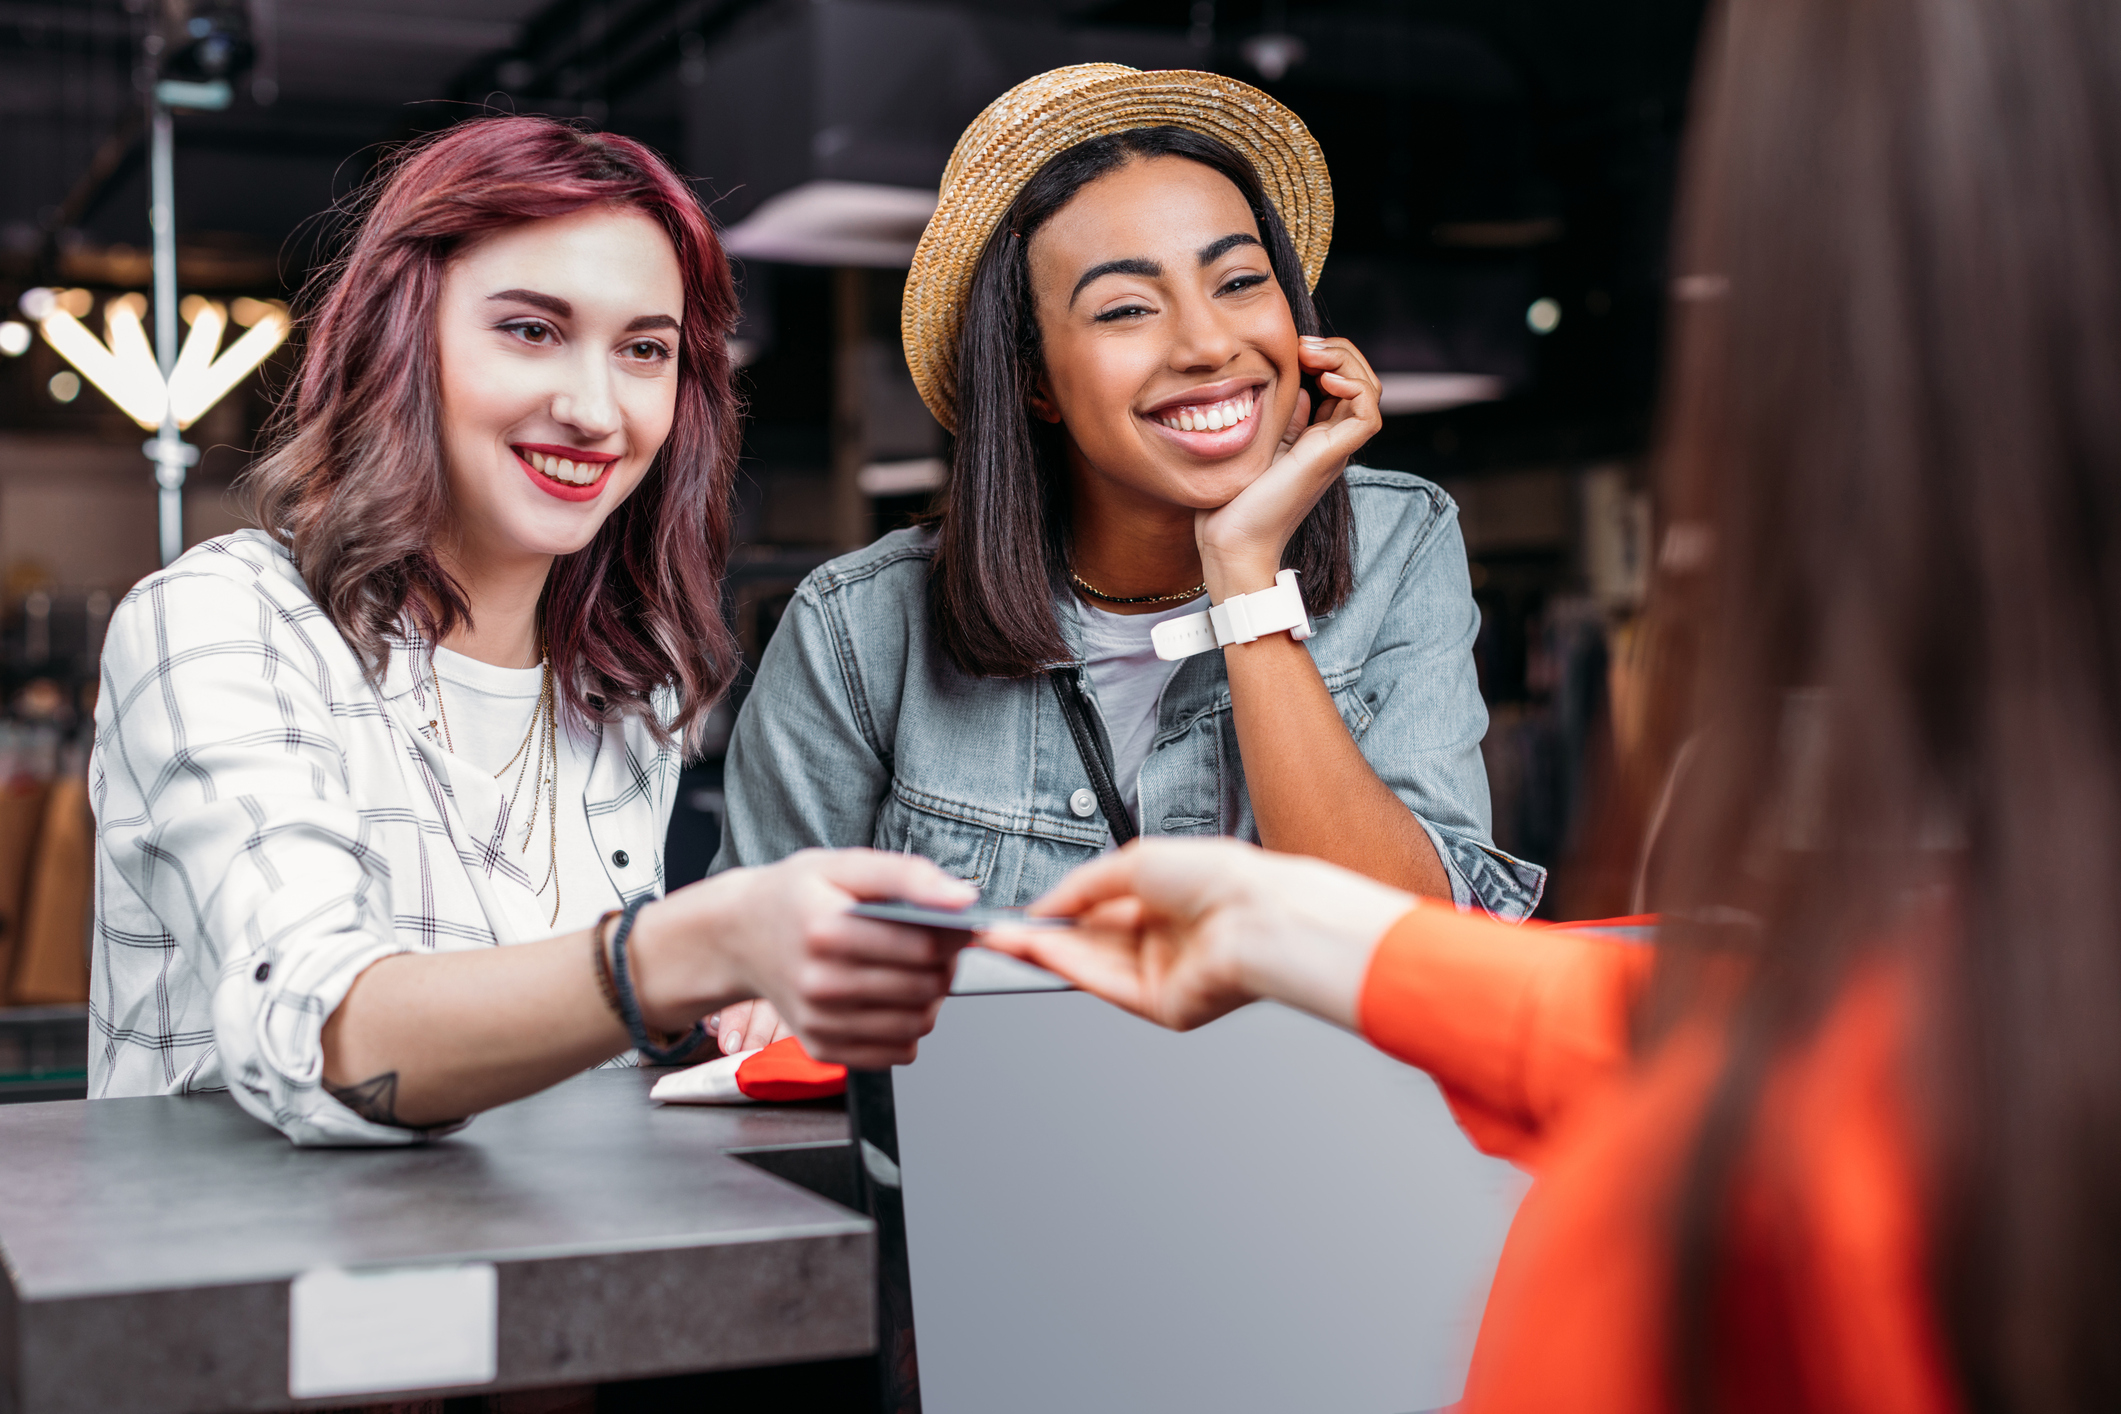 Two young women interact with cashier as one hands over a credit card.